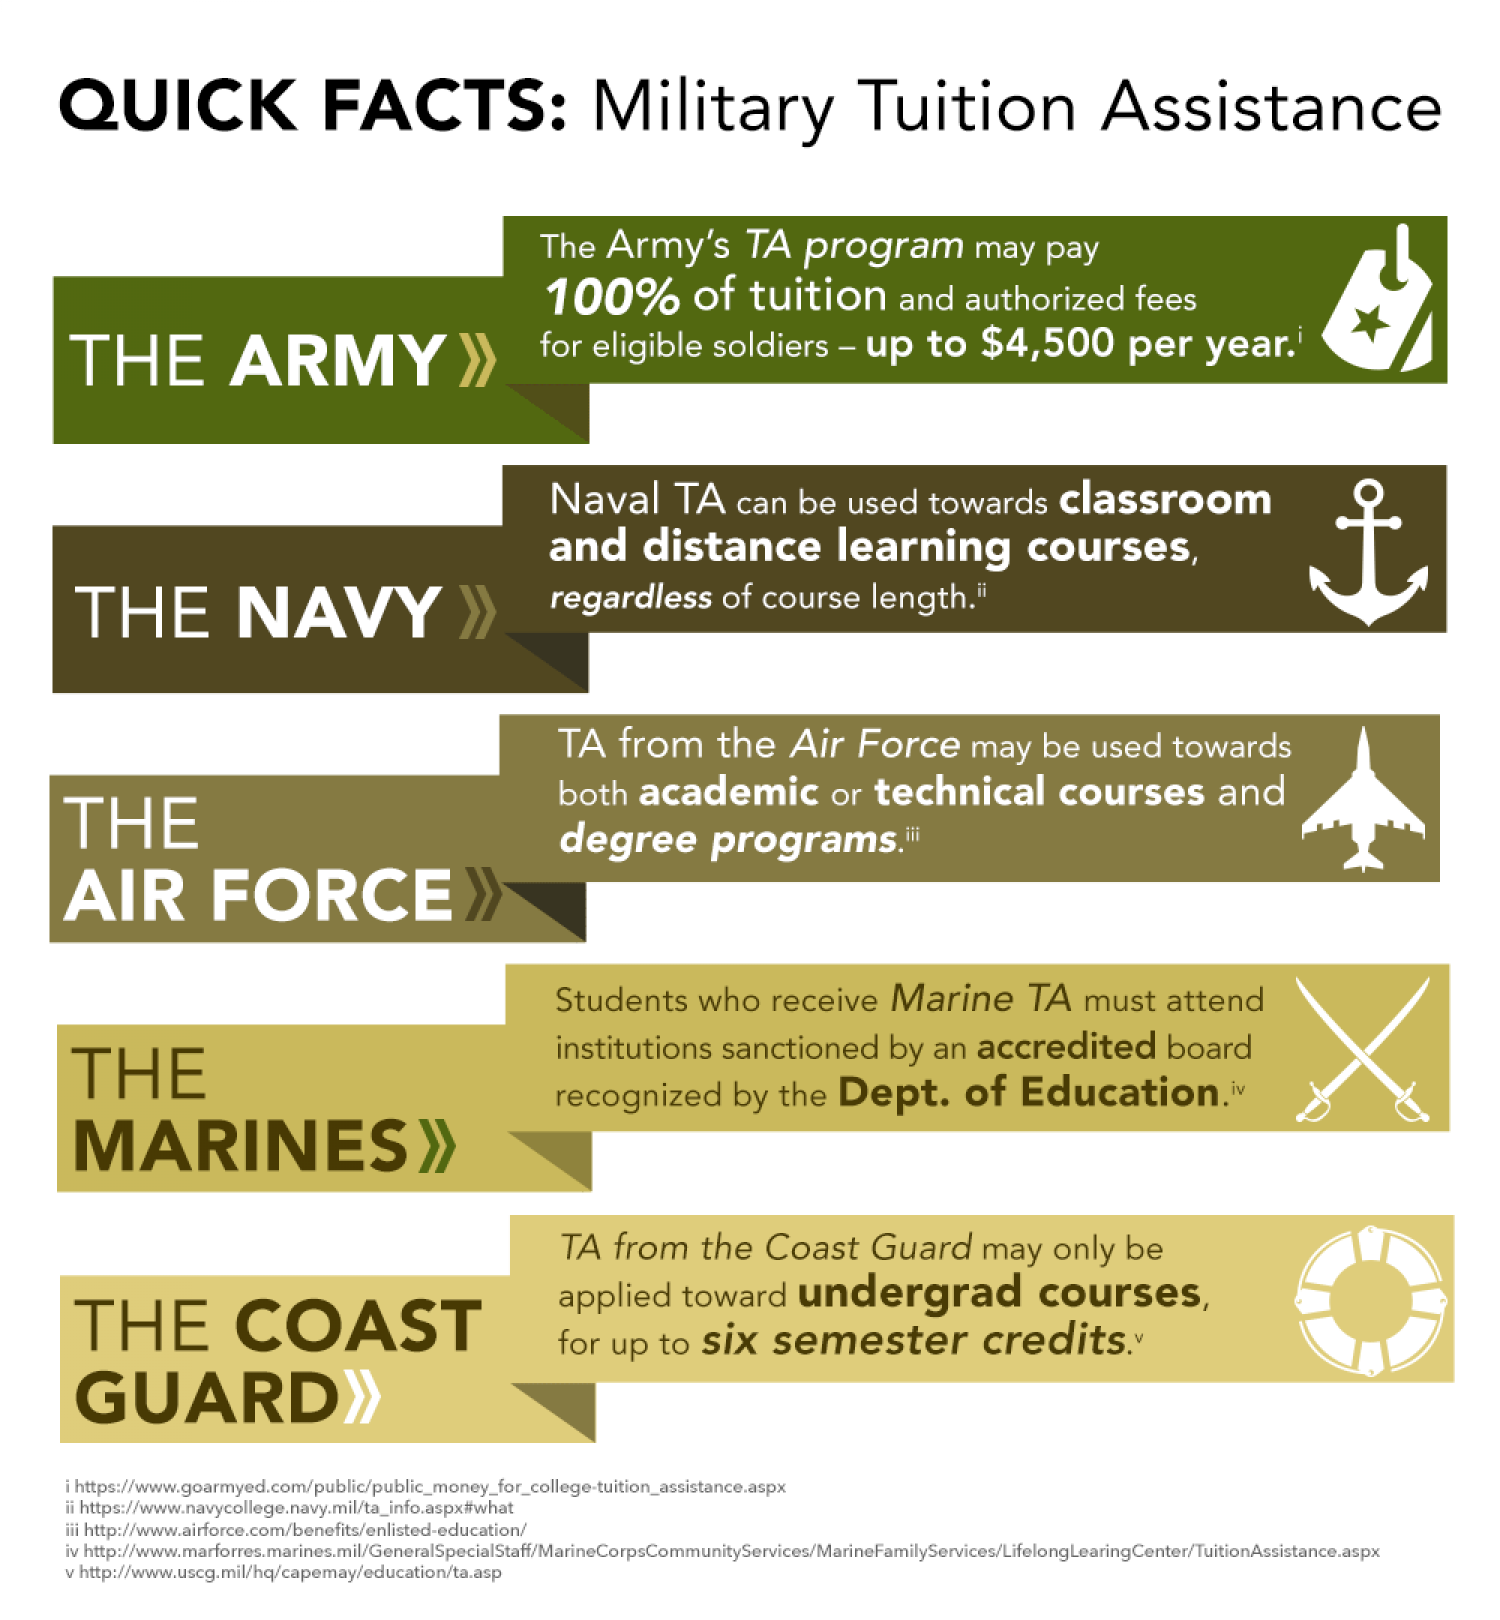 Military Tuition Assistance Facts Infographic